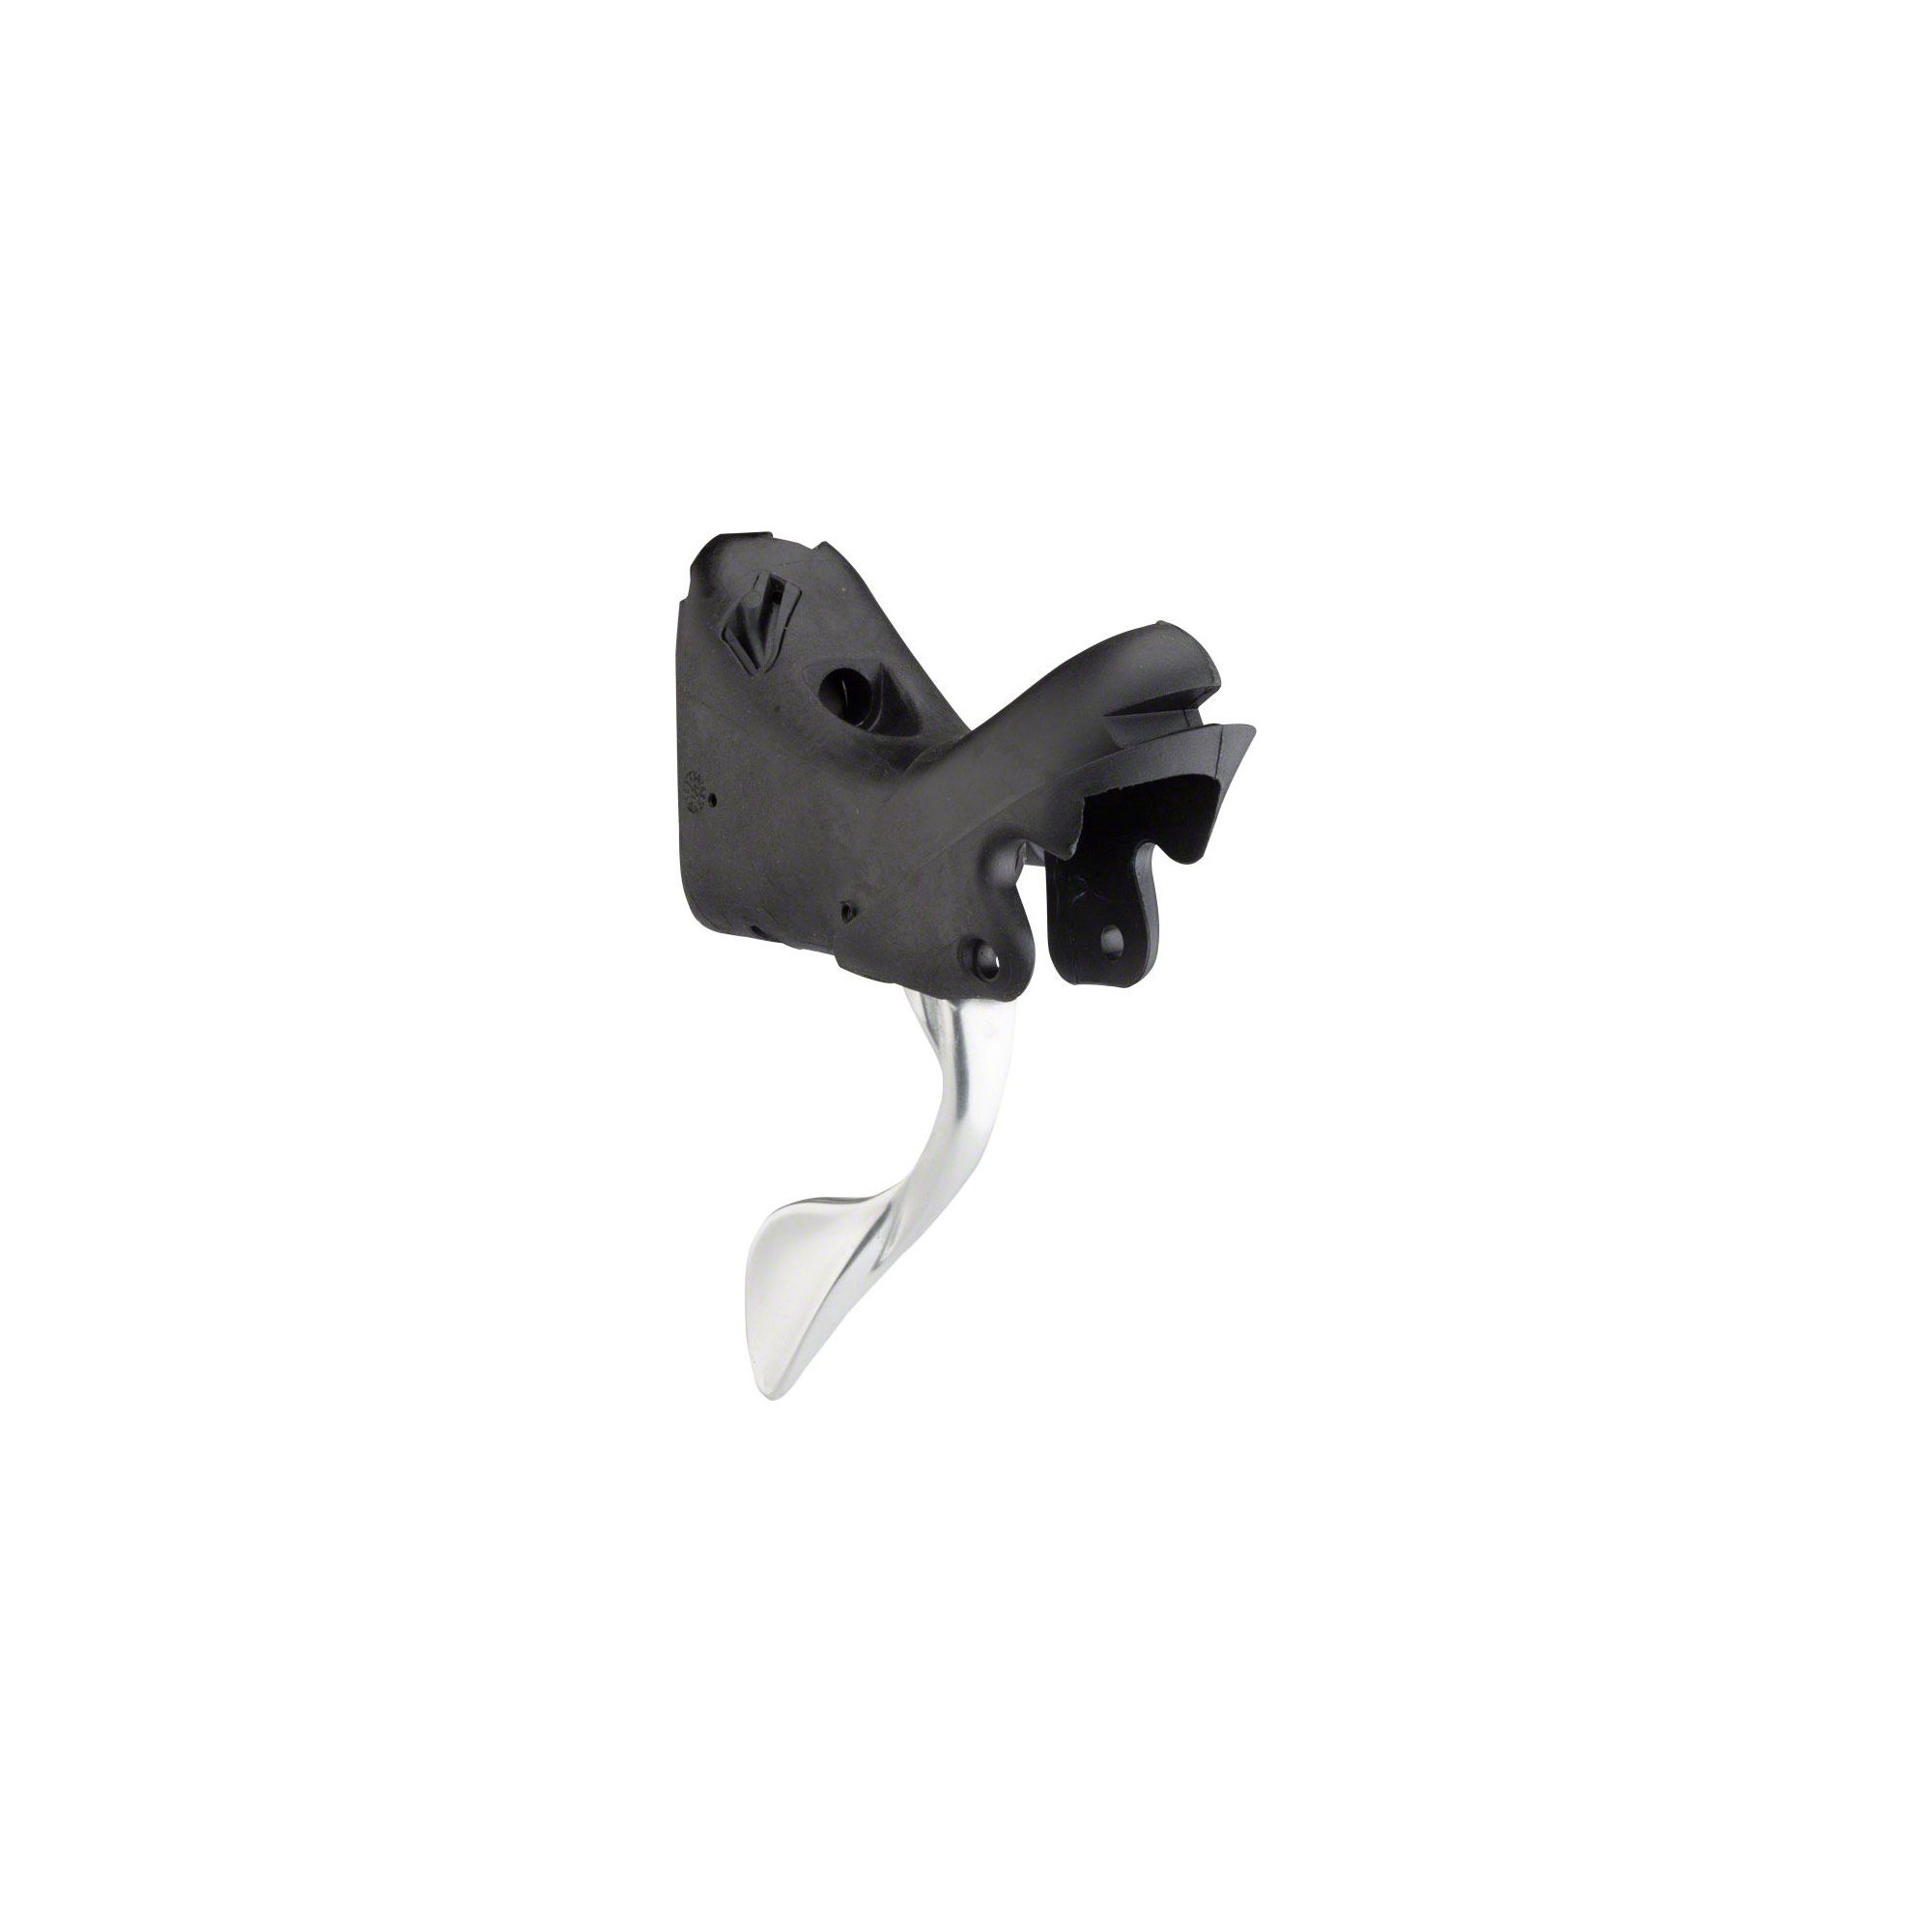 Campagnolo Athena Power-Shift 11s Right Lever Body Assembly for 2011-2014